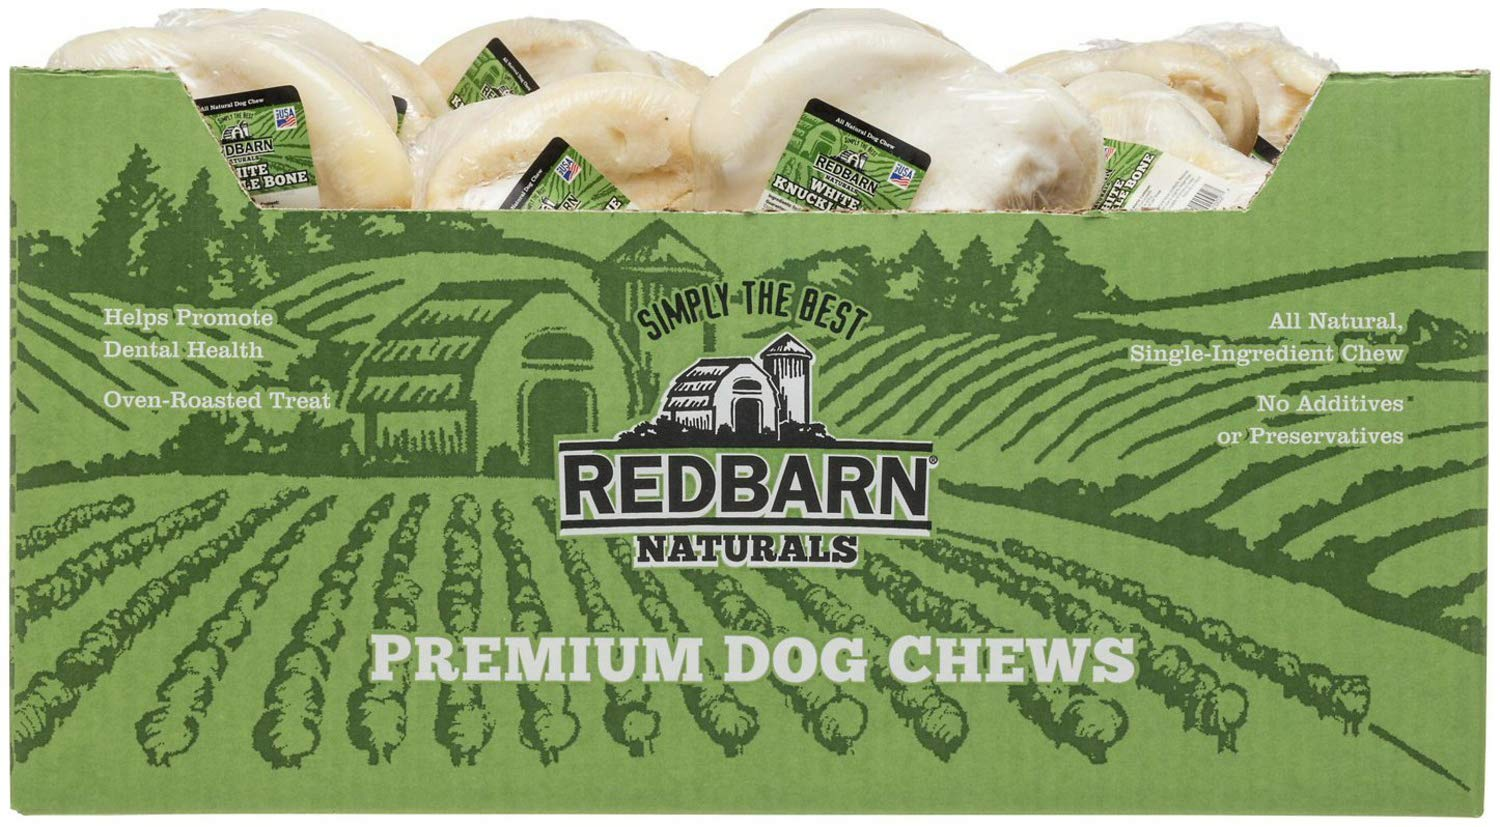 REDBARN White Knuckle Bone for Dogs, Naturals, 20 Count